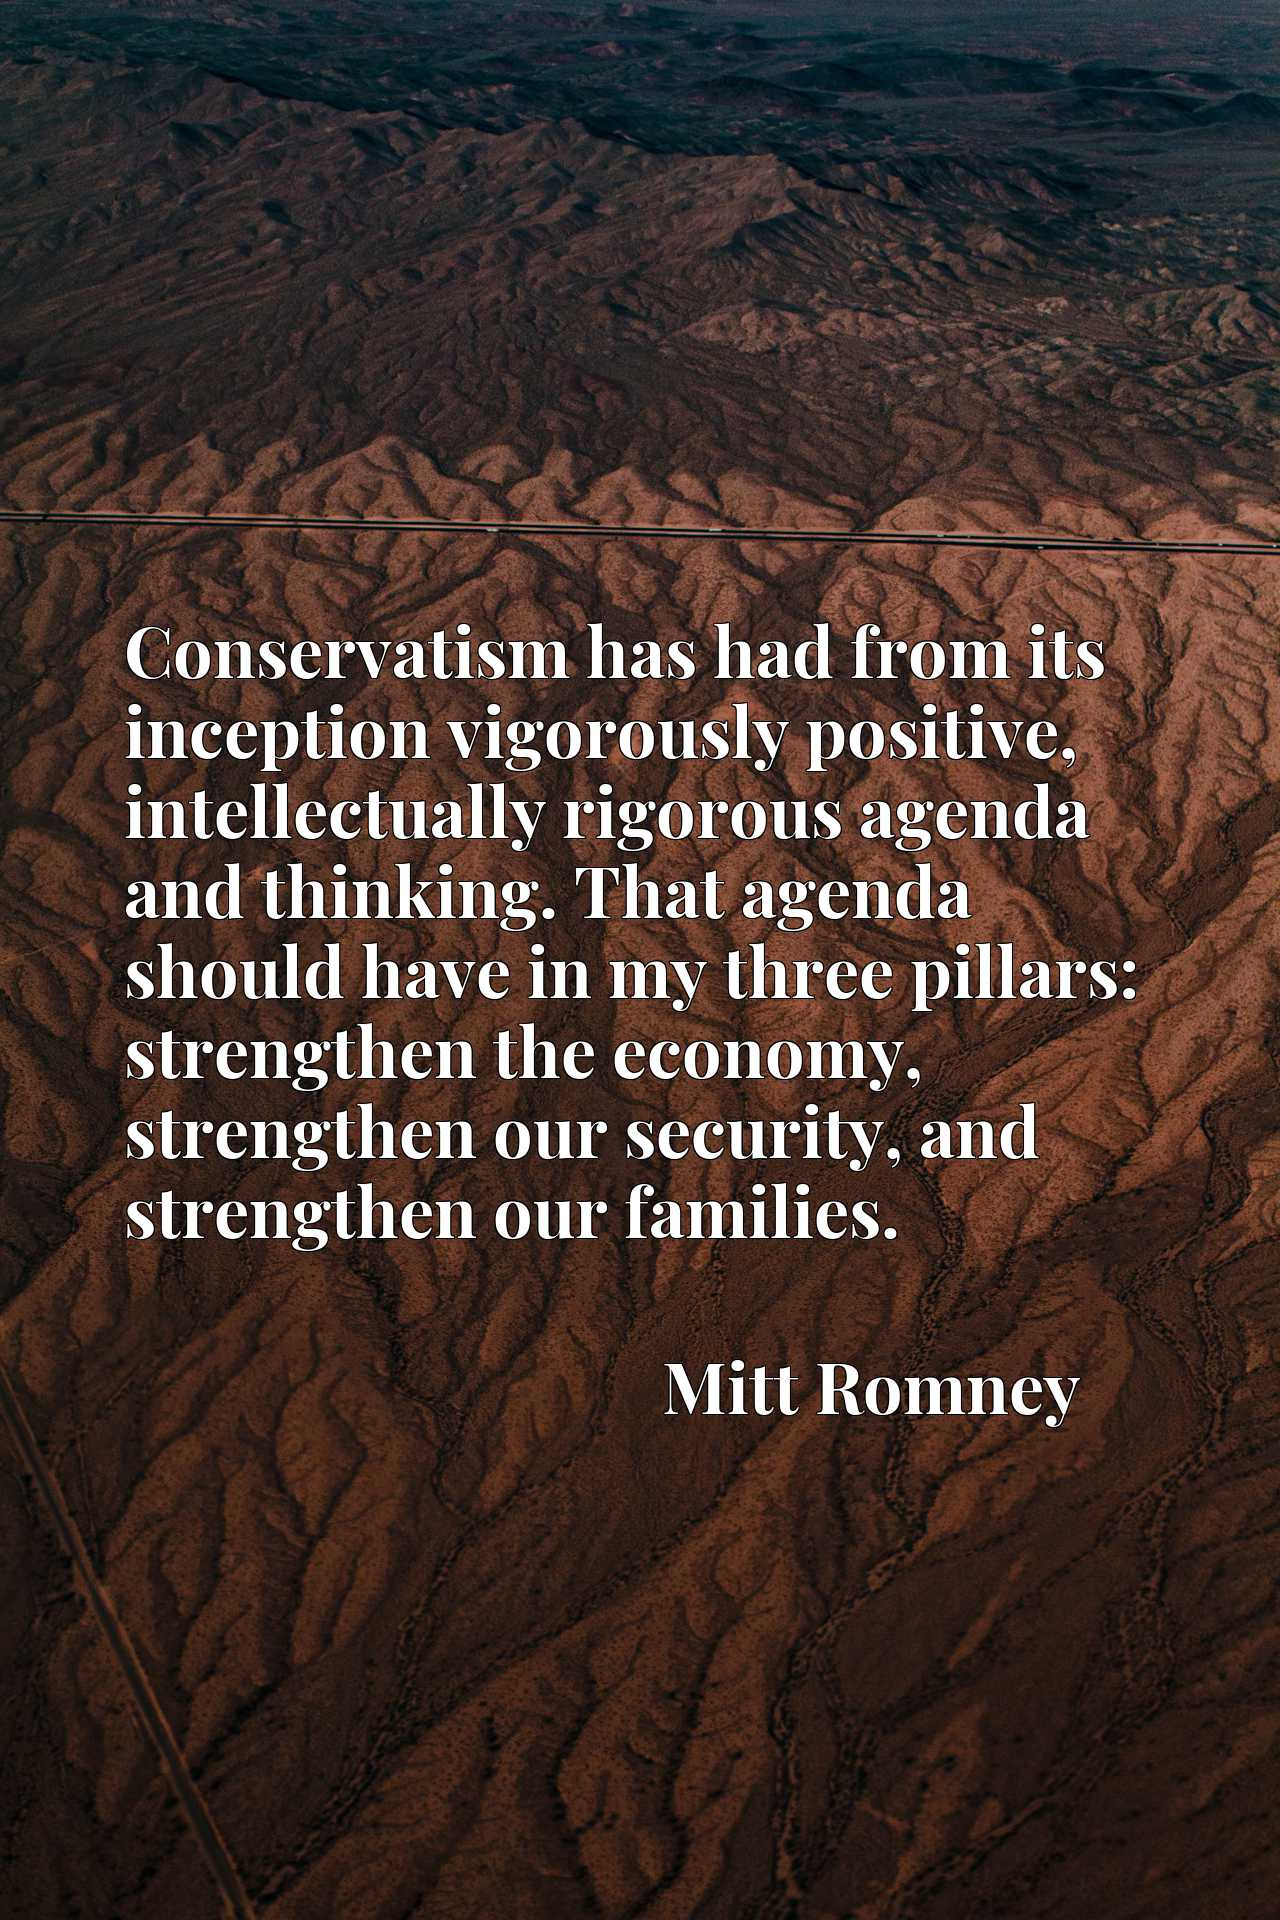 Conservatism has had from its inception vigorously positive, intellectually rigorous agenda and thinking. That agenda should have in my three pillars: strengthen the economy, strengthen our security, and strengthen our families.